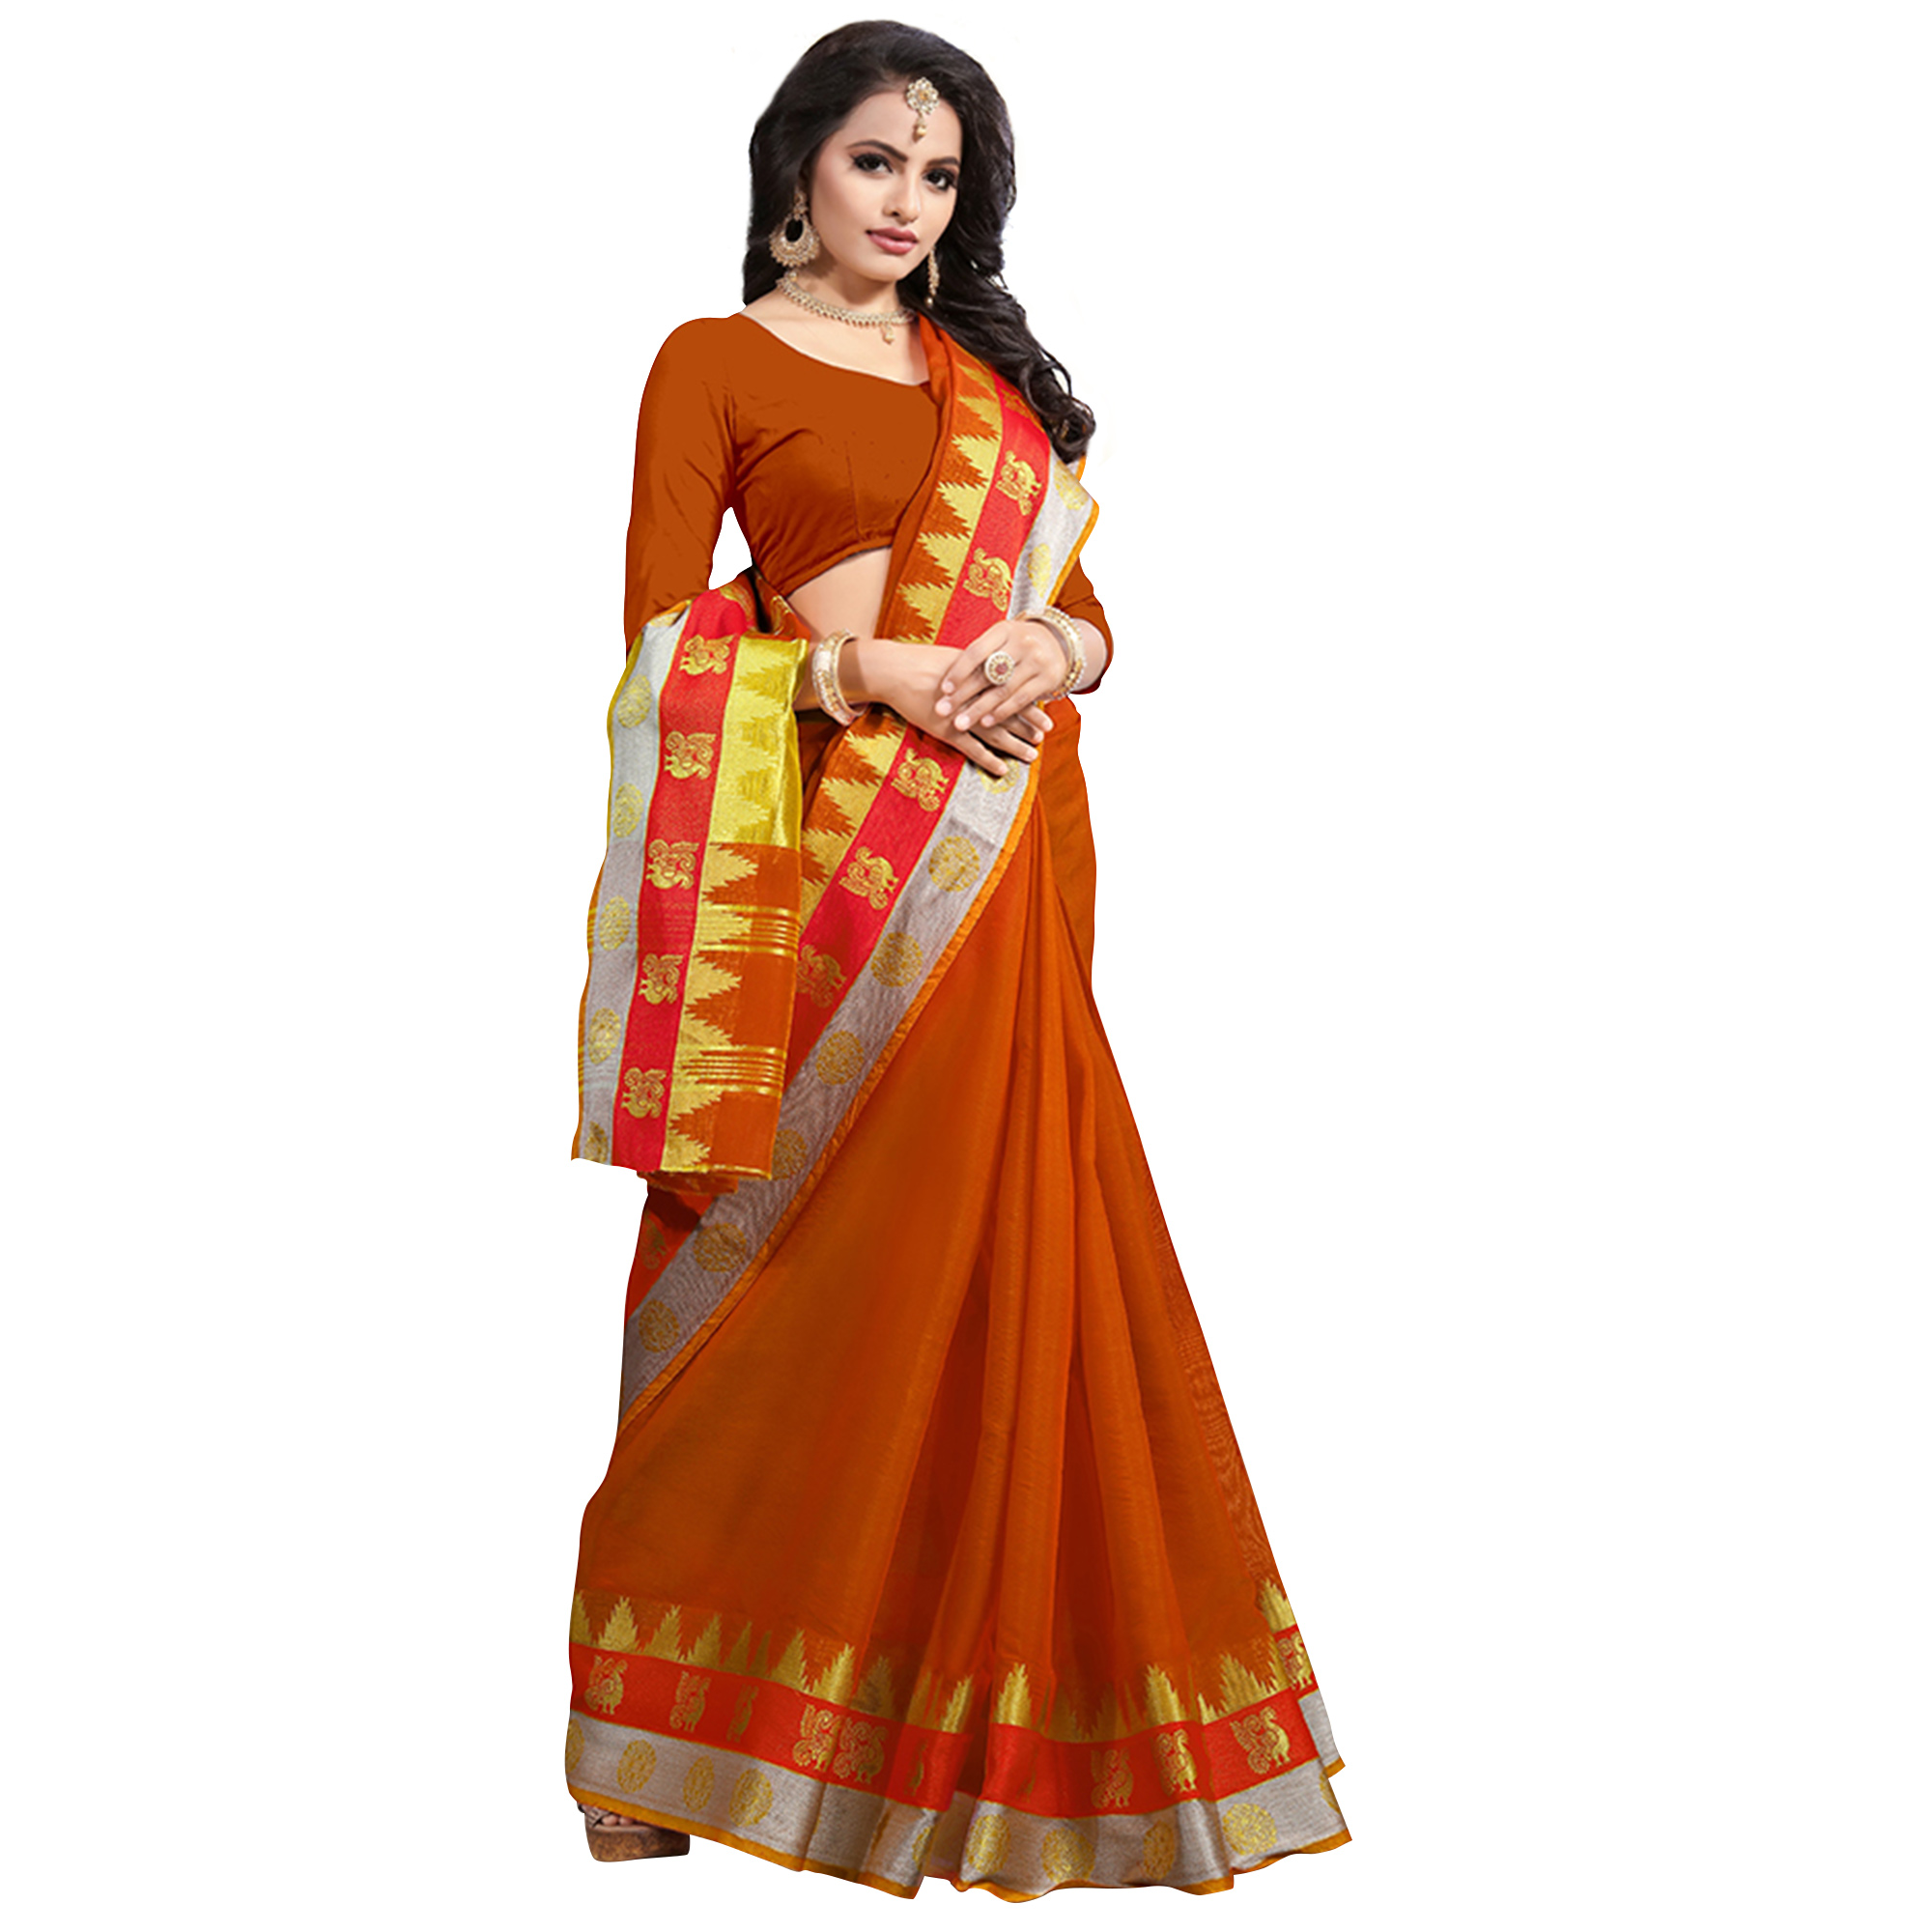 Classical Orange Colored Festive Wear Cotton Saree